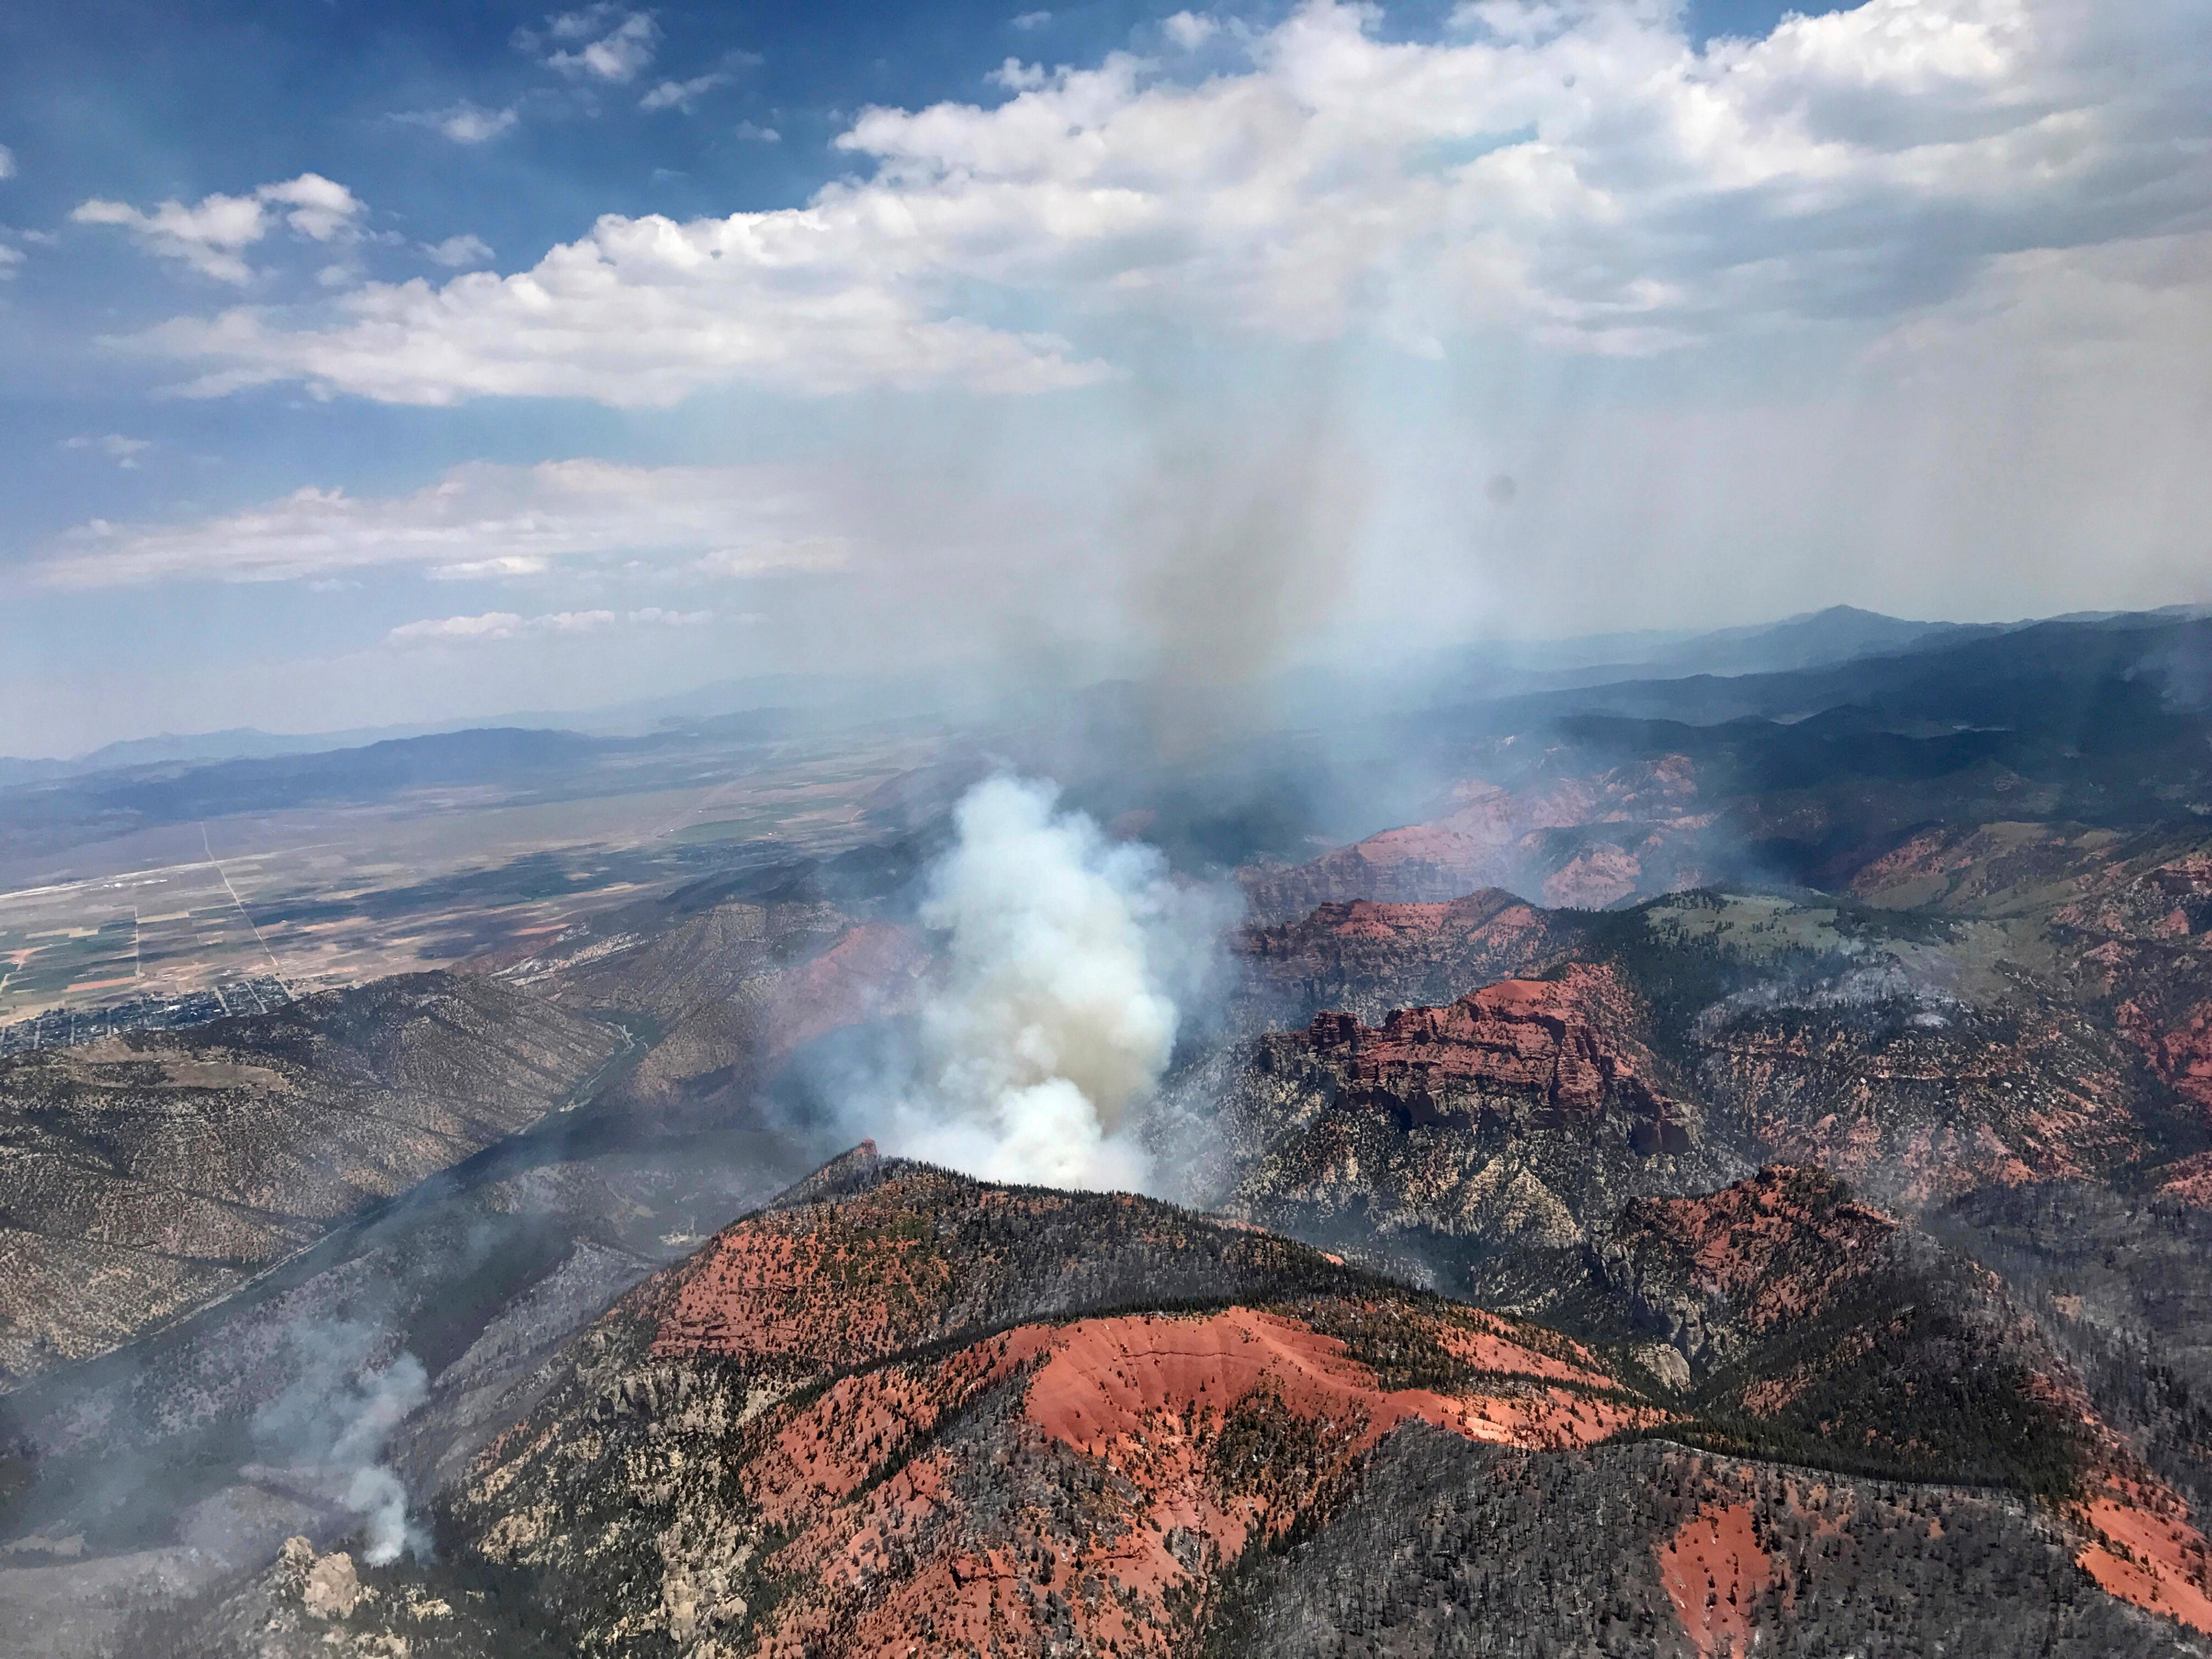 This Monday, June 26, 2017, photo provided by the Utah Governor's Office, shows fire activity near Parowan, during a tour by Utah Lt. Gov. Spencer Cox, in southern Utah. The nation's largest wildfire has forced more than 1,500 people from their homes and cabins in a southern Utah mountain area home to a ski town and popular fishing lake. (Justin Harding/Utah Governor's Office via AP)